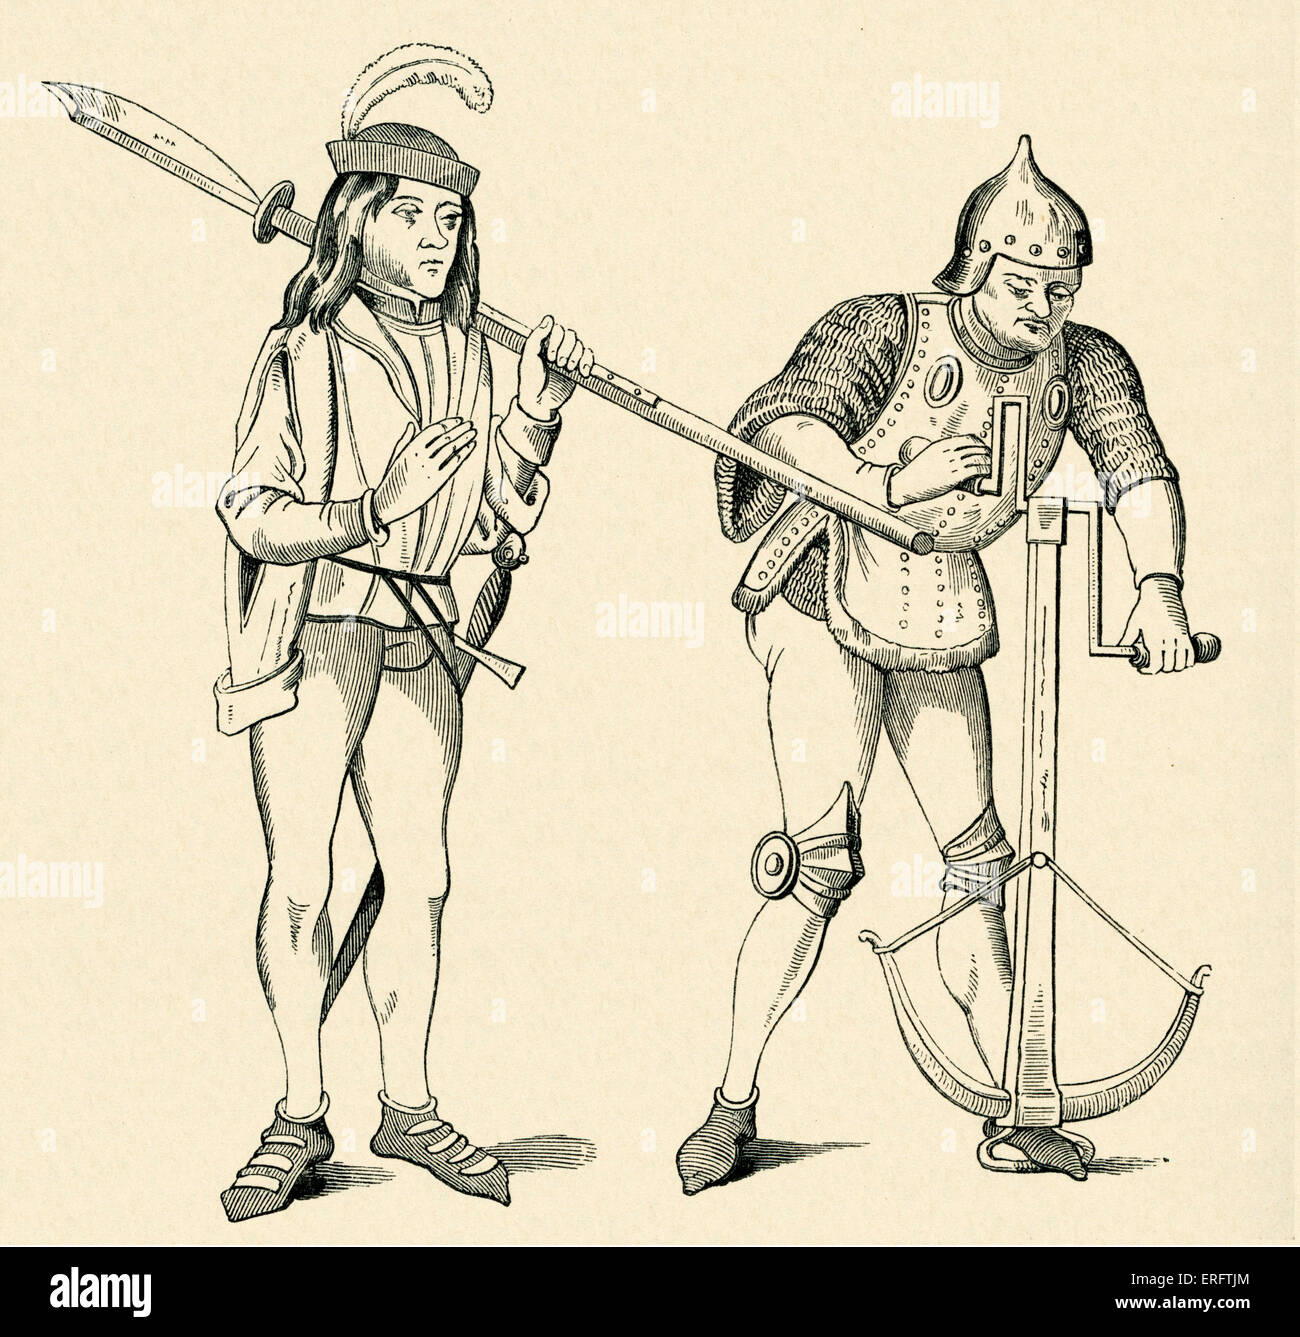 Varlet/Squire carrying an halberd and Archer in fighting dress drawing the string of his crossbow. - Stock Image